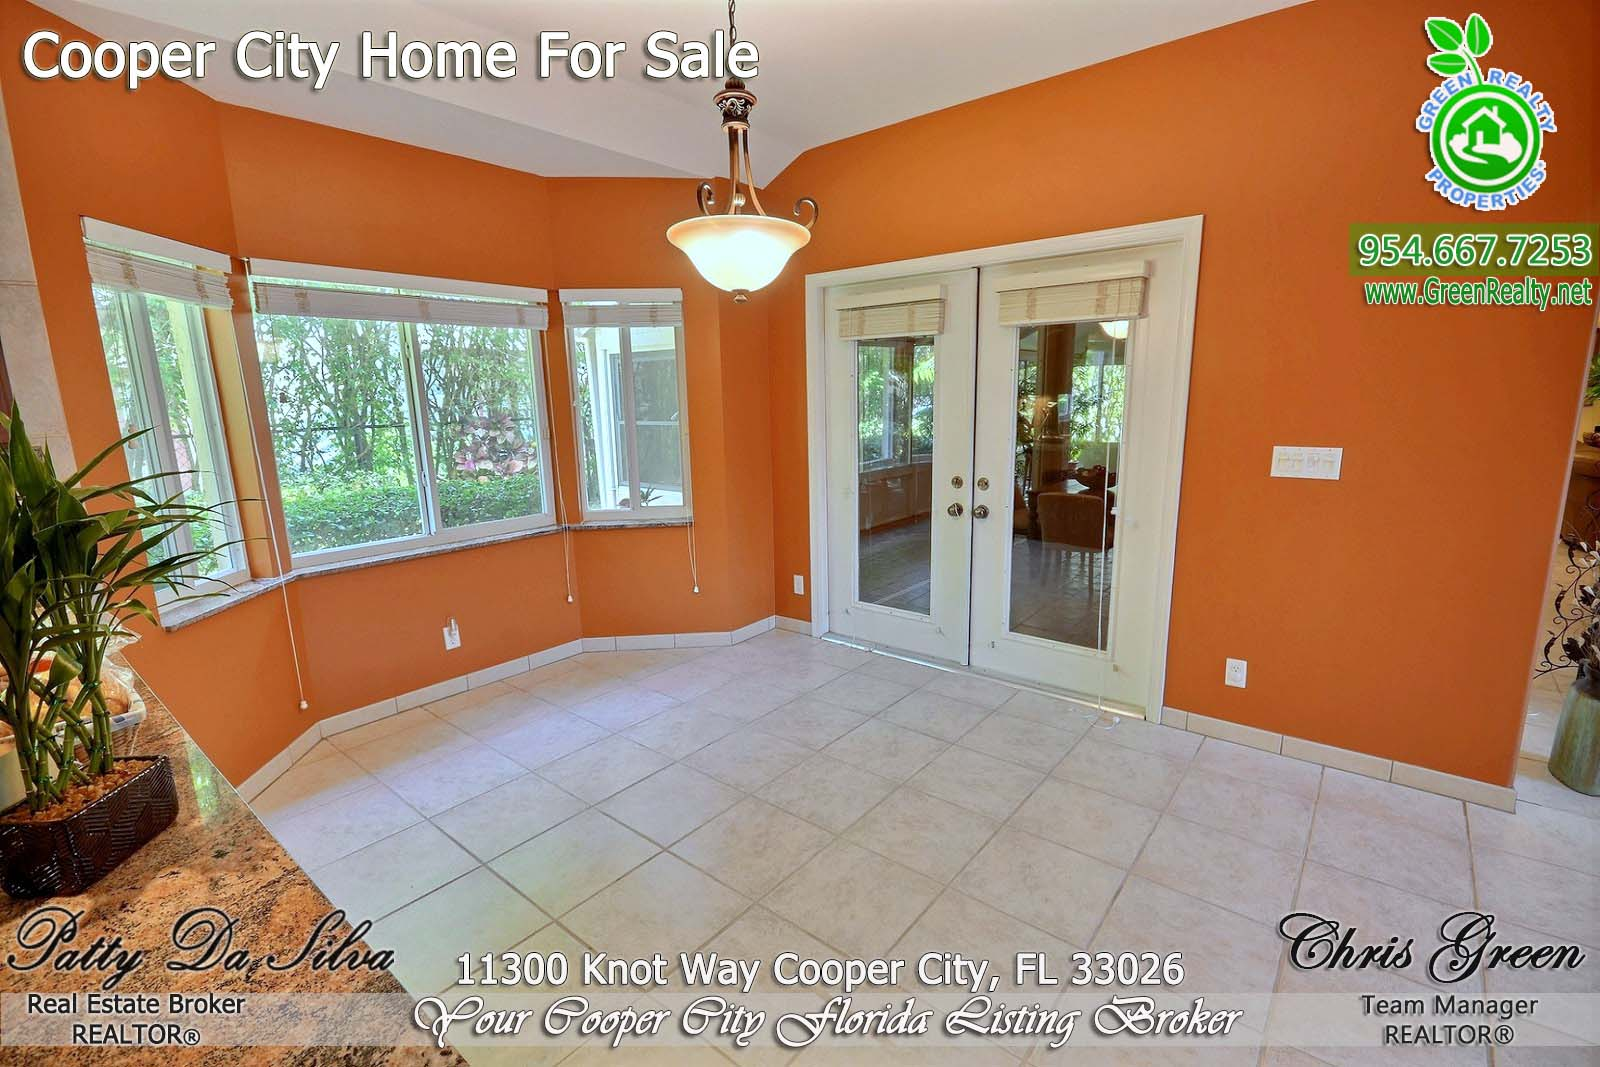 25 Rock Creek Cooper City Homes (1)